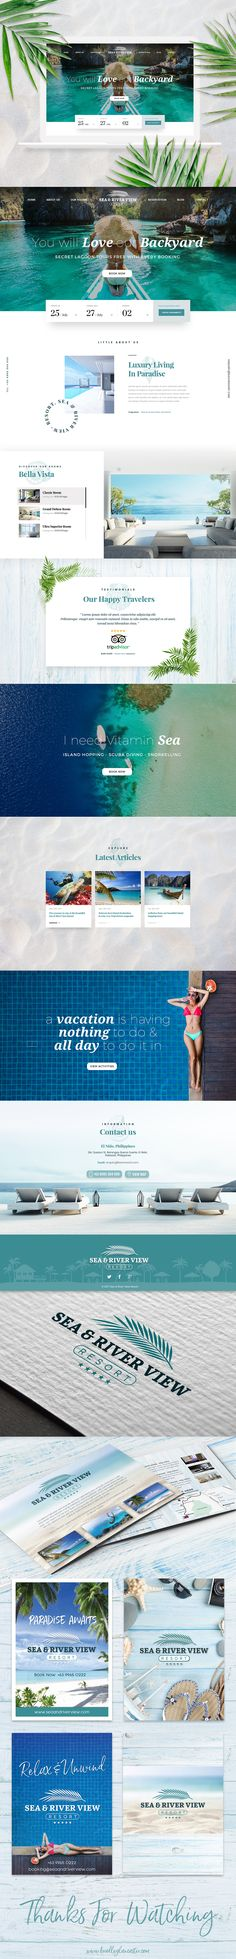 Luxury Tropical Landing Page Design for Sea and River View Resort. Bringing the elements of Nature, Nautical, Tropical, Beach, Luxury into this design with the use of great quality photography.